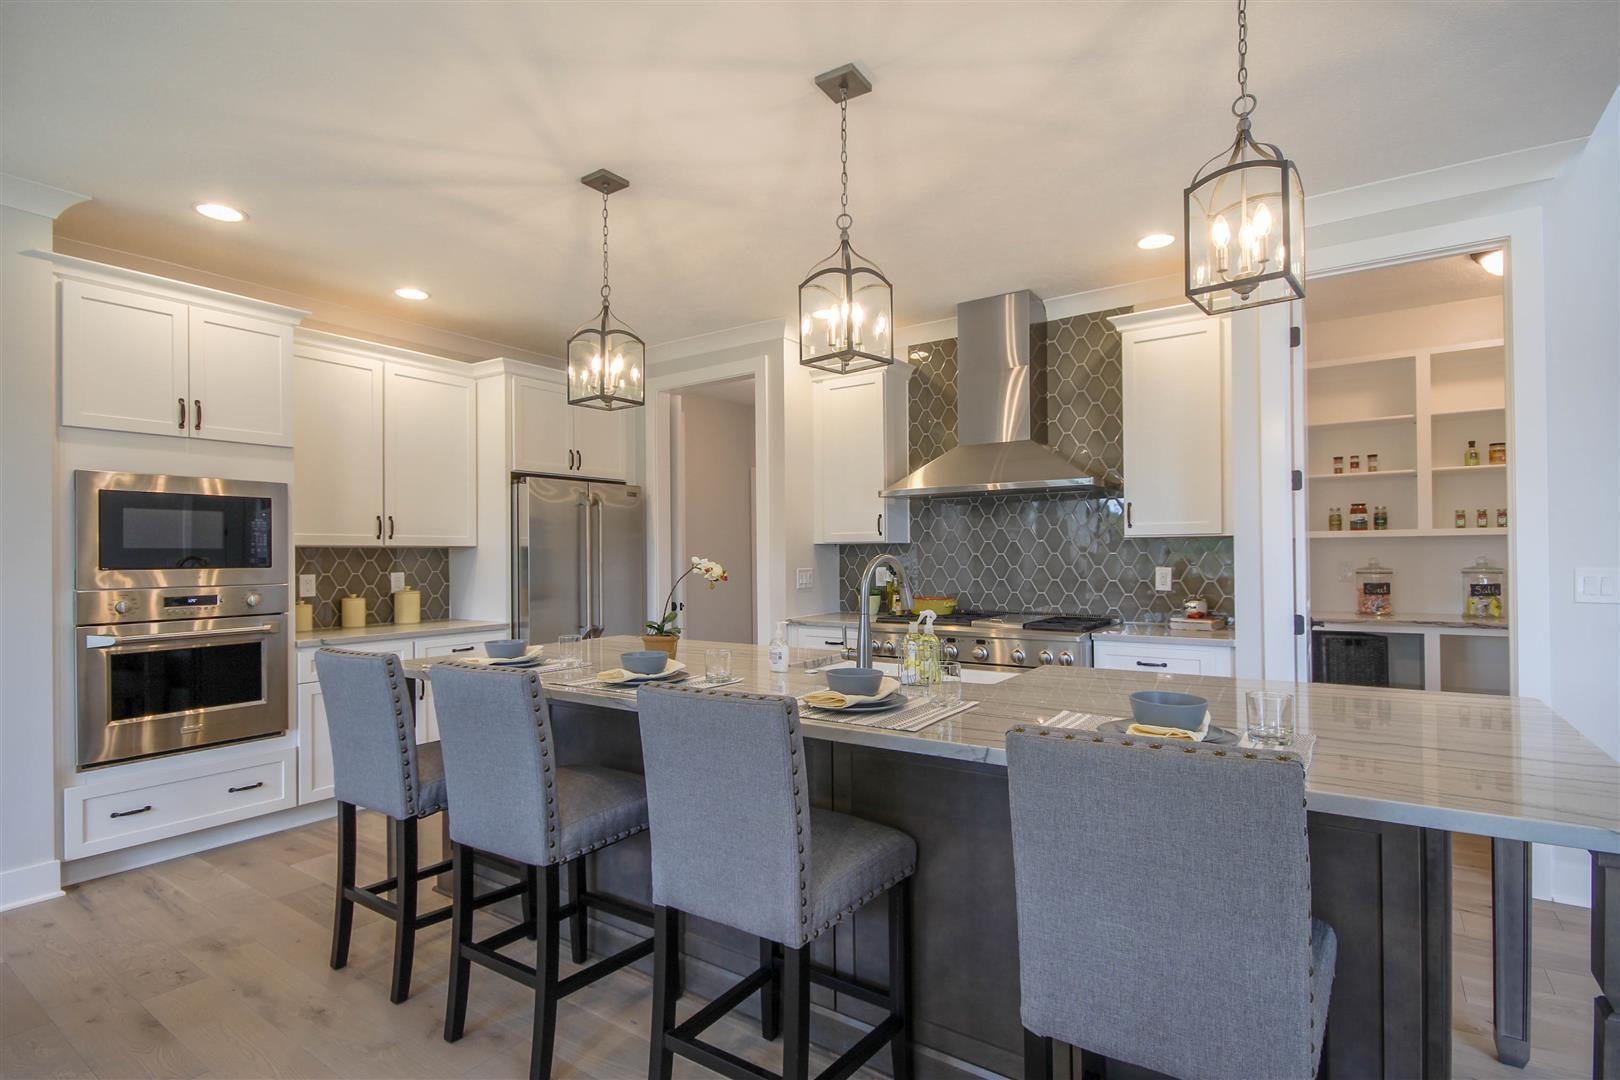 Kitchen featured in the Madison By Mayberry Homes in Lansing, MI